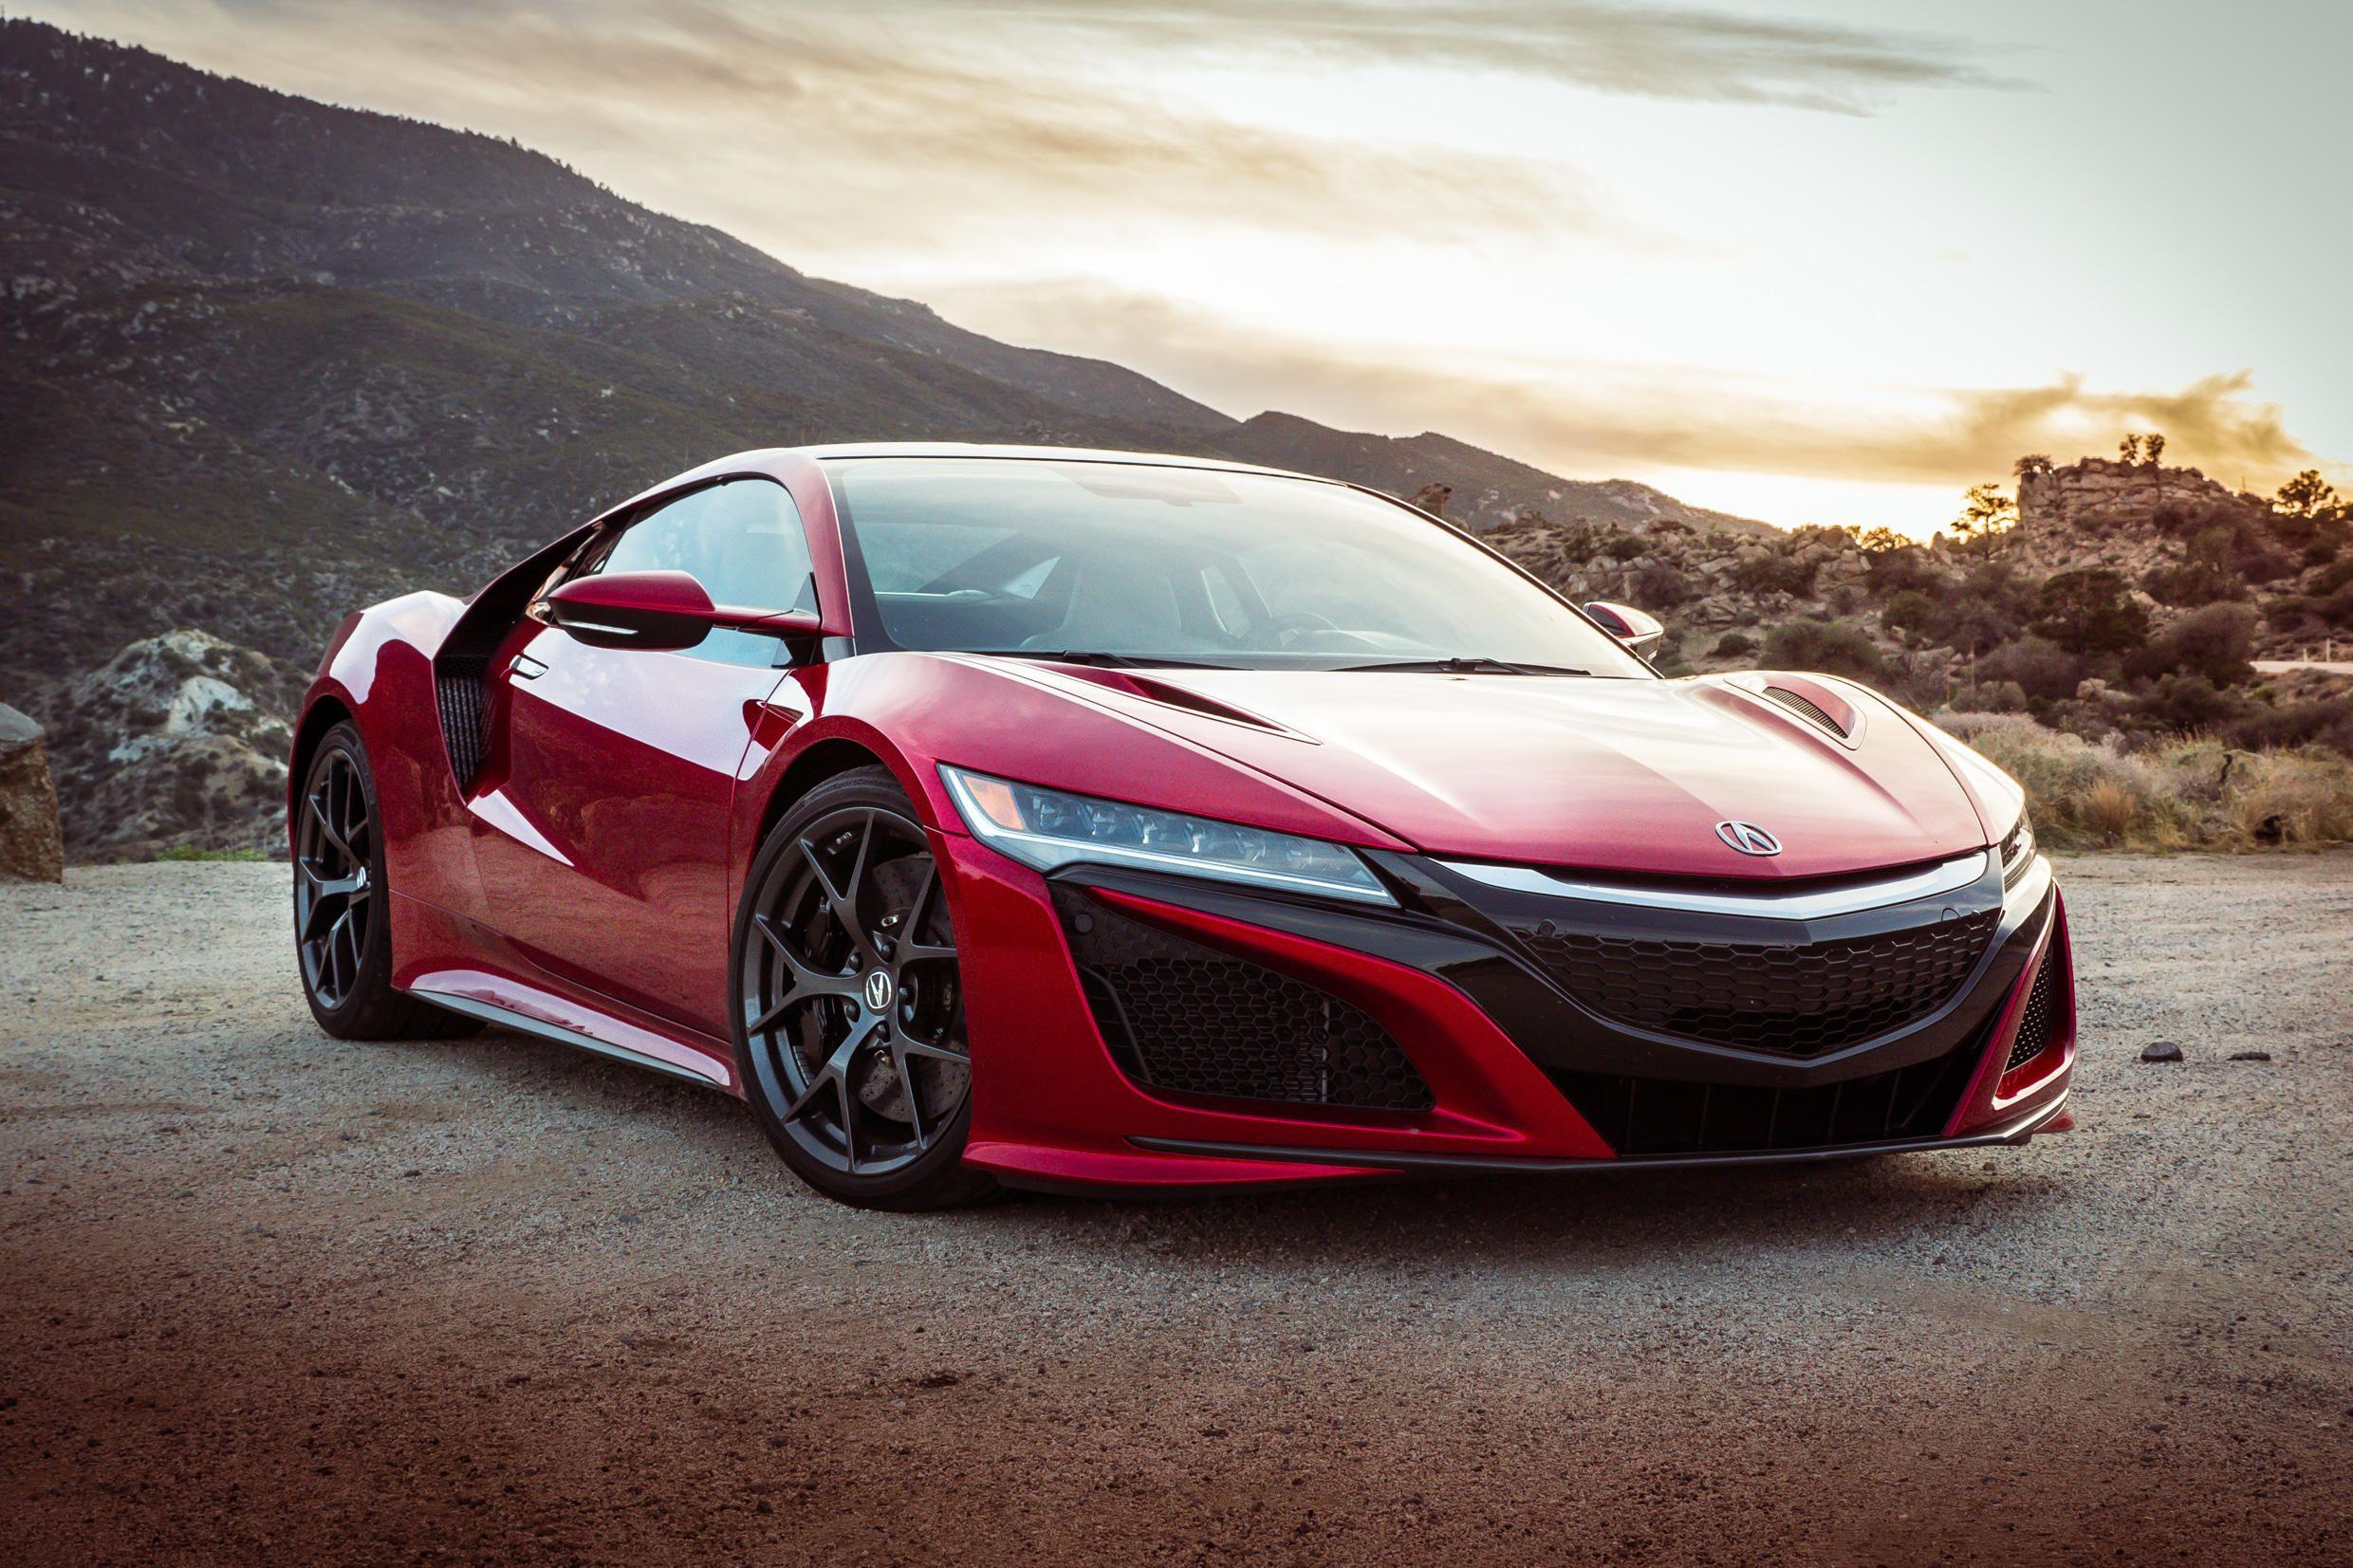 2017 Acura Nsx Wallpapers Wallpaper Cave